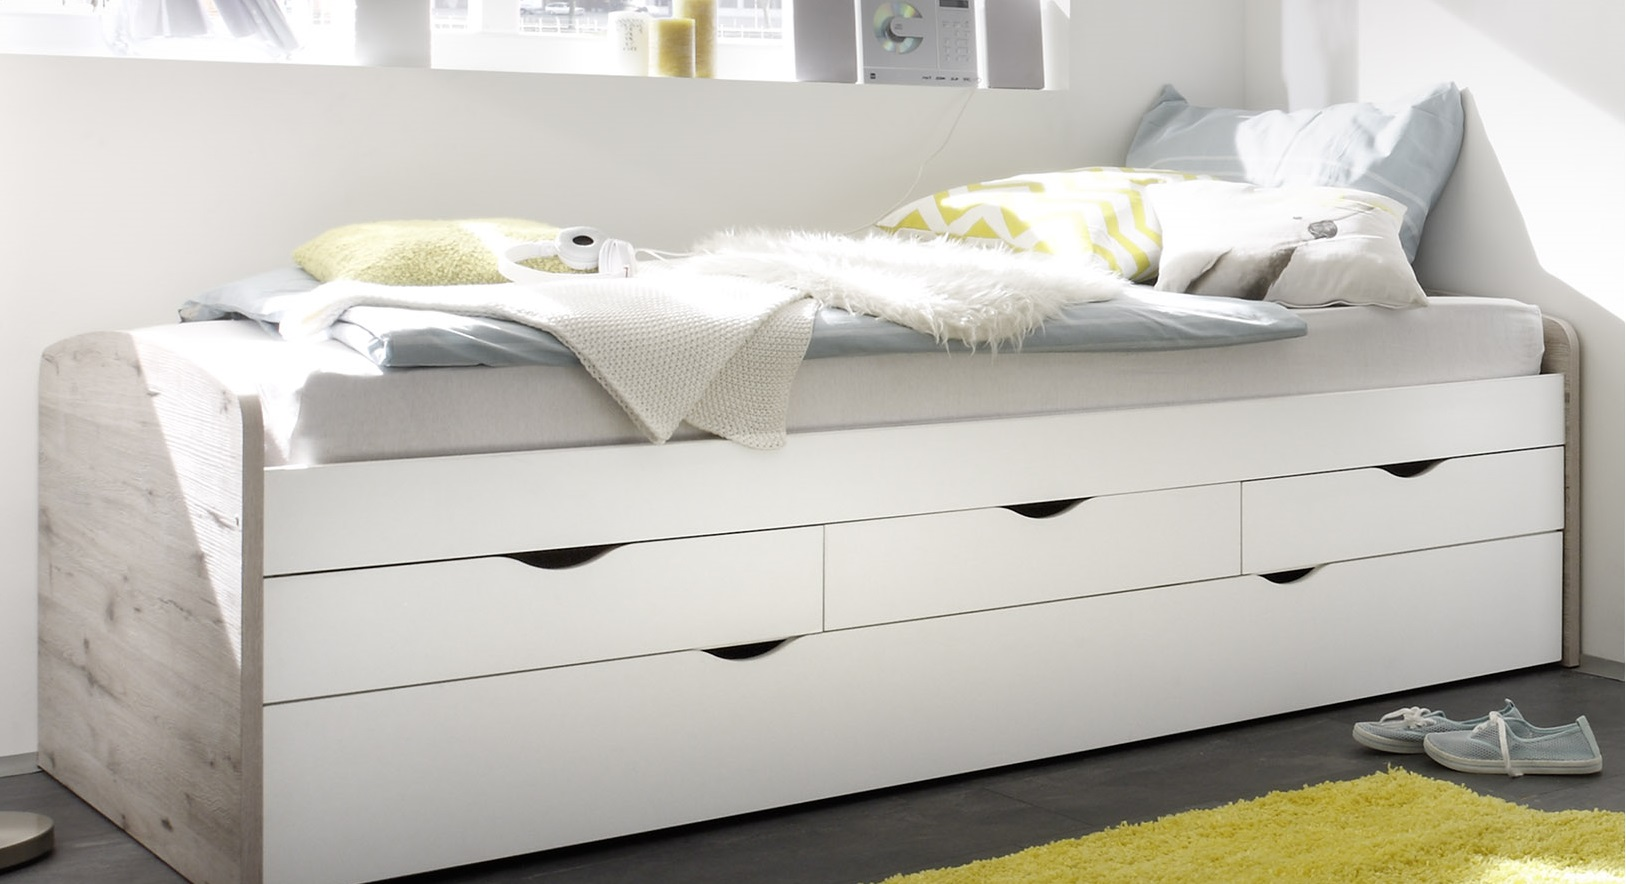 bett einzelbett ausziehbett schubladenbett tandembett 90cm. Black Bedroom Furniture Sets. Home Design Ideas